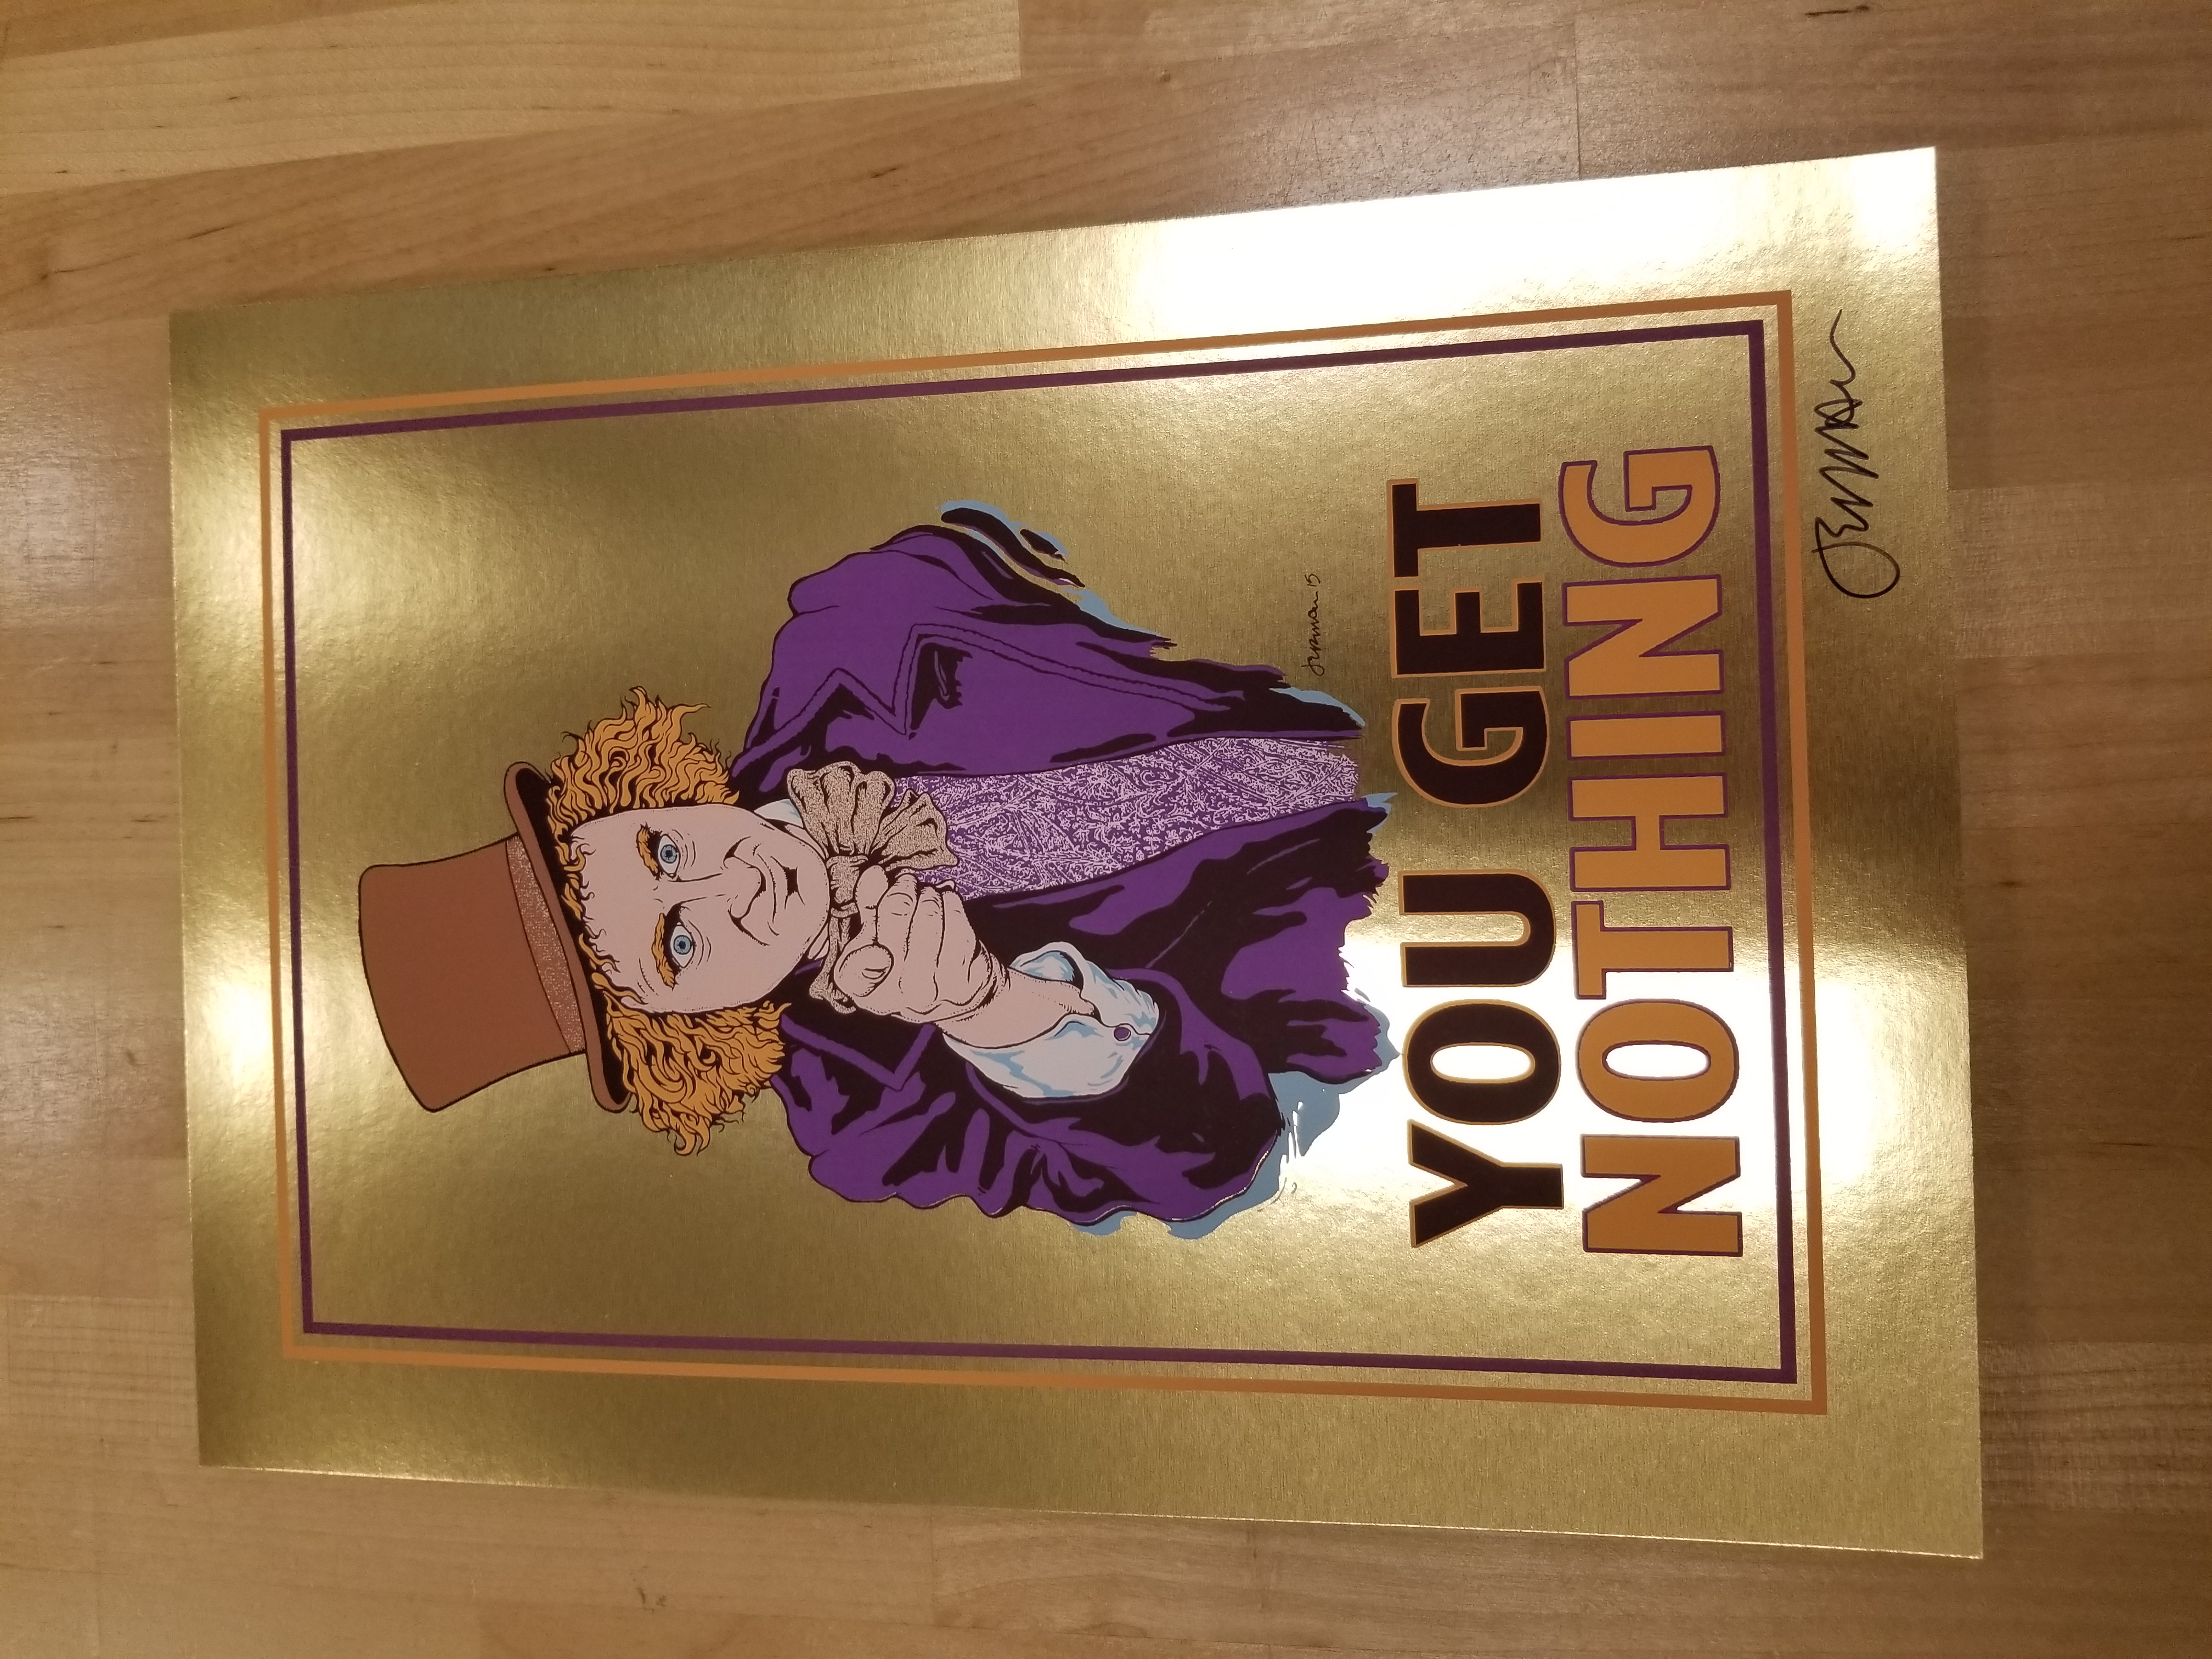 'YOU GET NOTHING' Willy Wonka Mini Print (GOLDEN TICKET VARIANT)